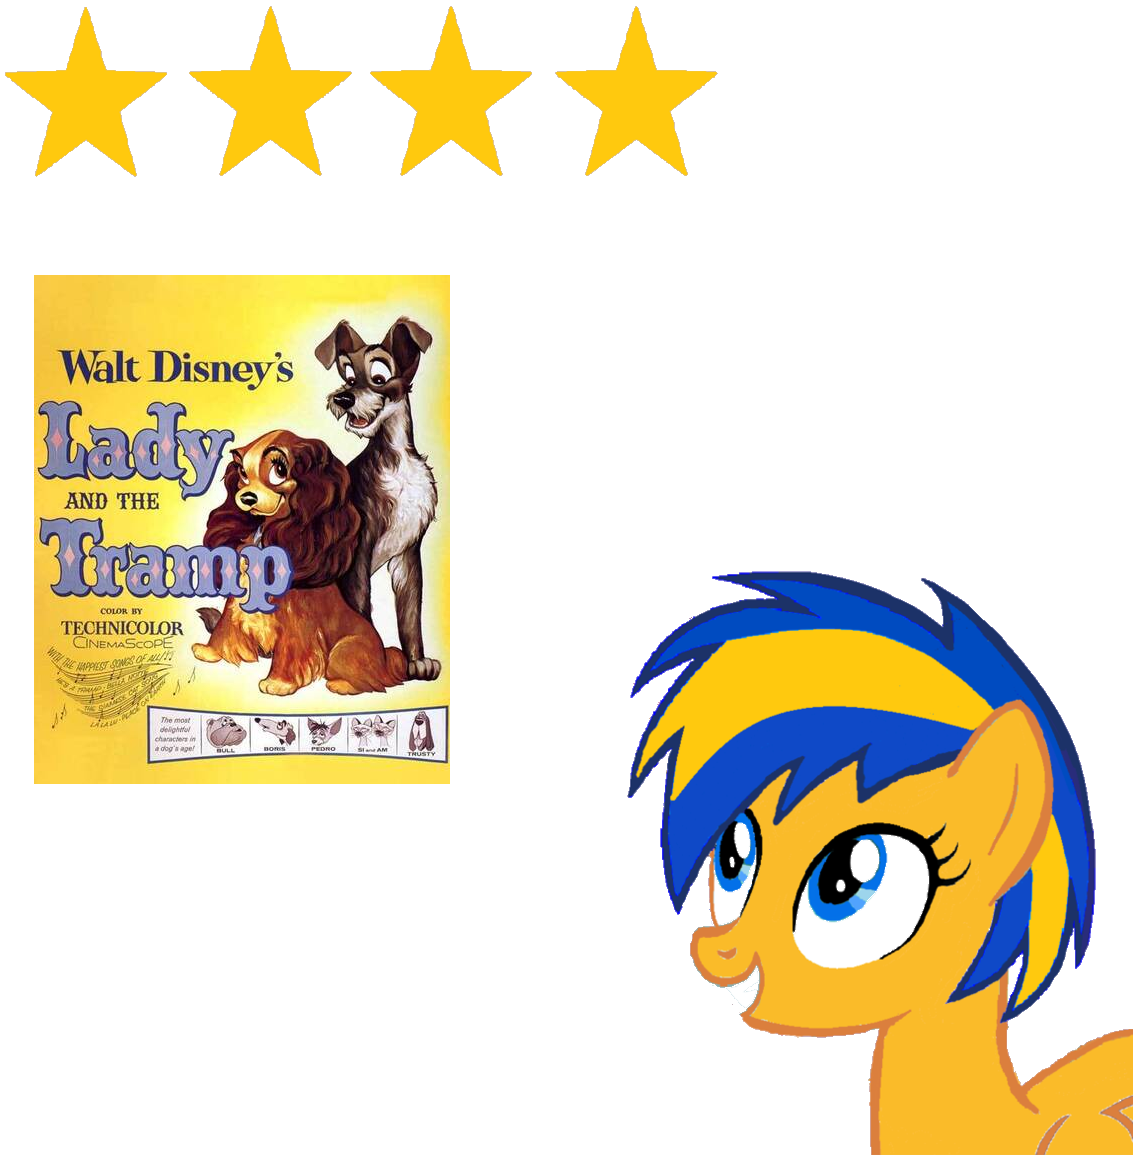 Lady And The Tramp 1955 Review By Mlpfan3991 On Deviantart